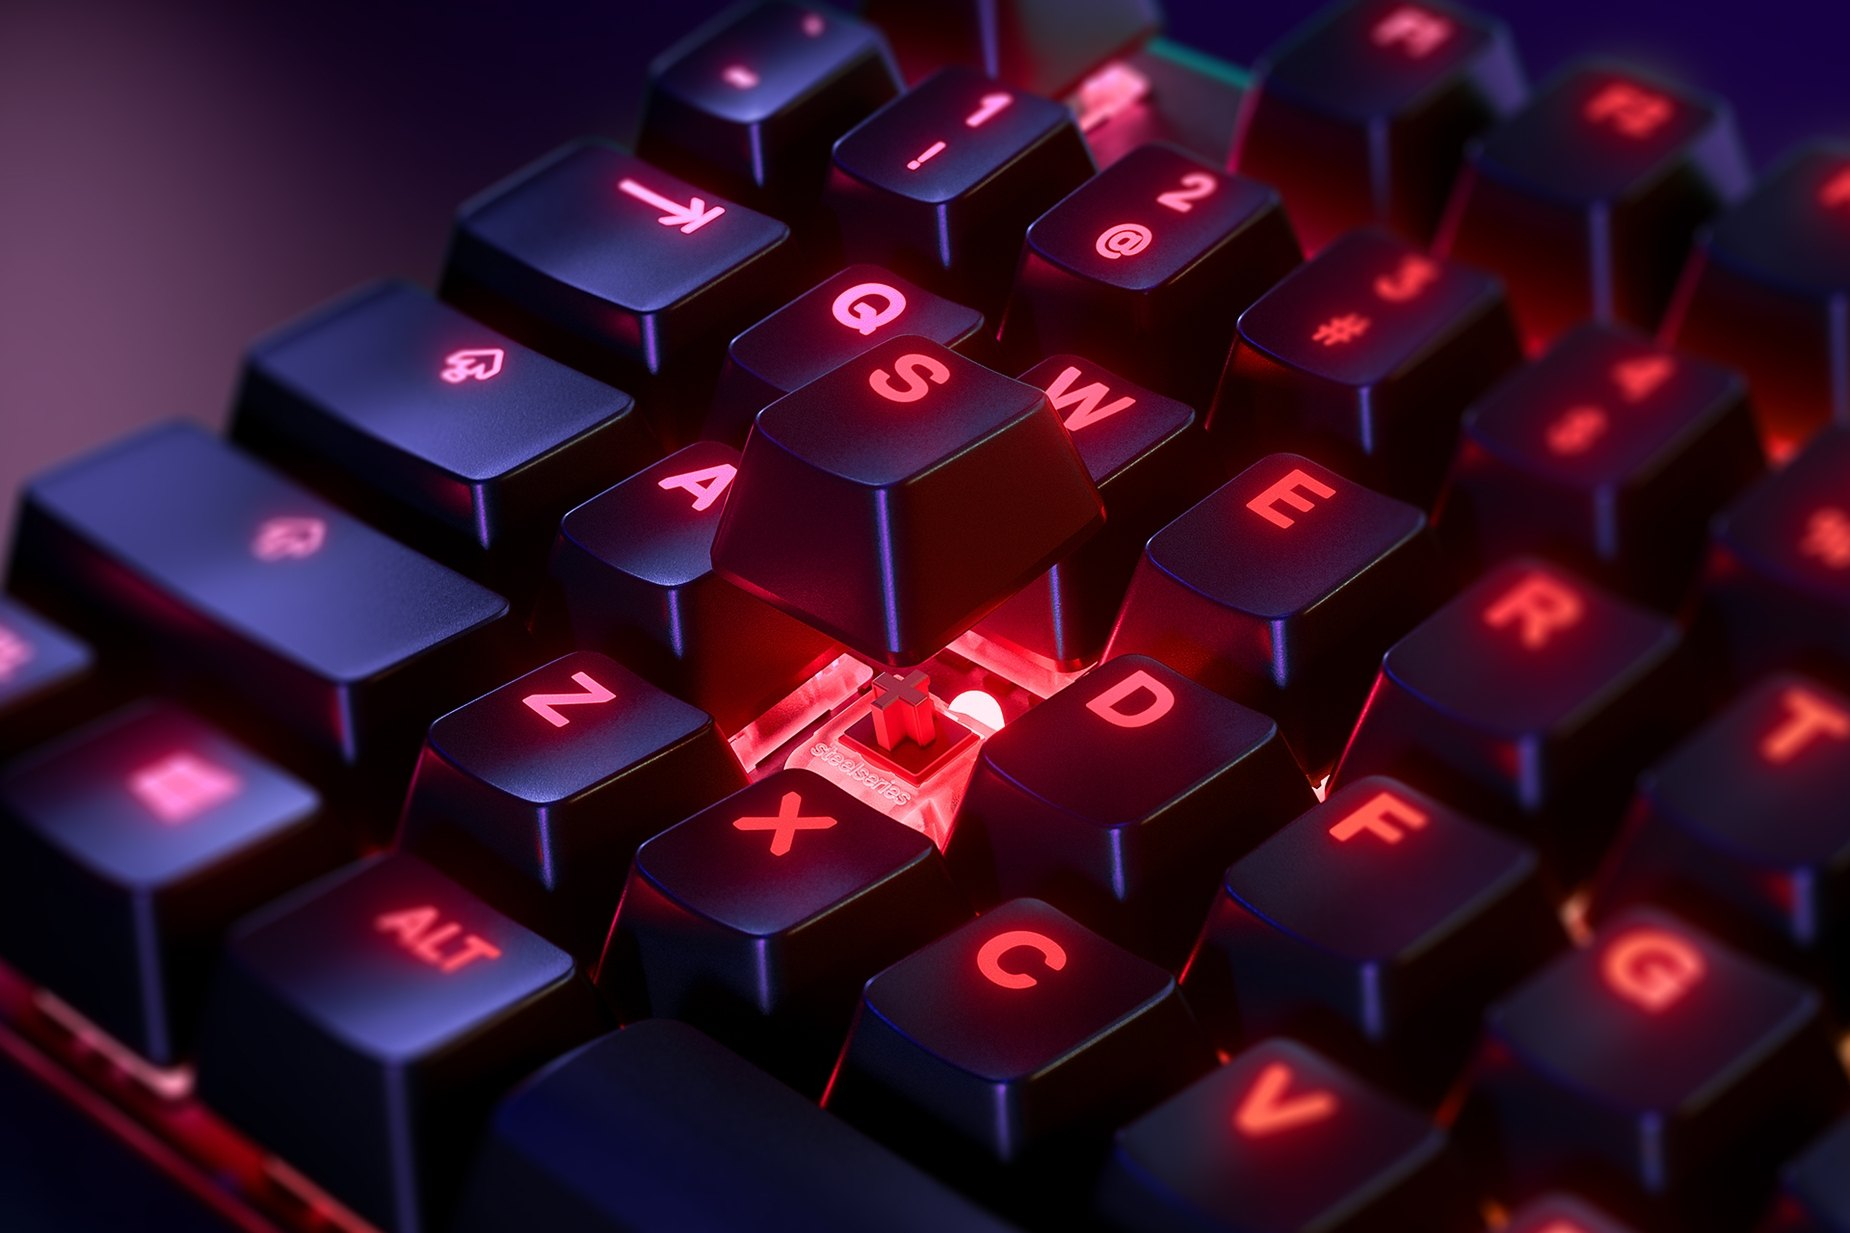 Zoomed in view of a single key on the US English - Apex 7 (Red Switch) gaming keyboard, the key is raised up to show the SteelSeries QX2 Mechanical RGB Switch underneath